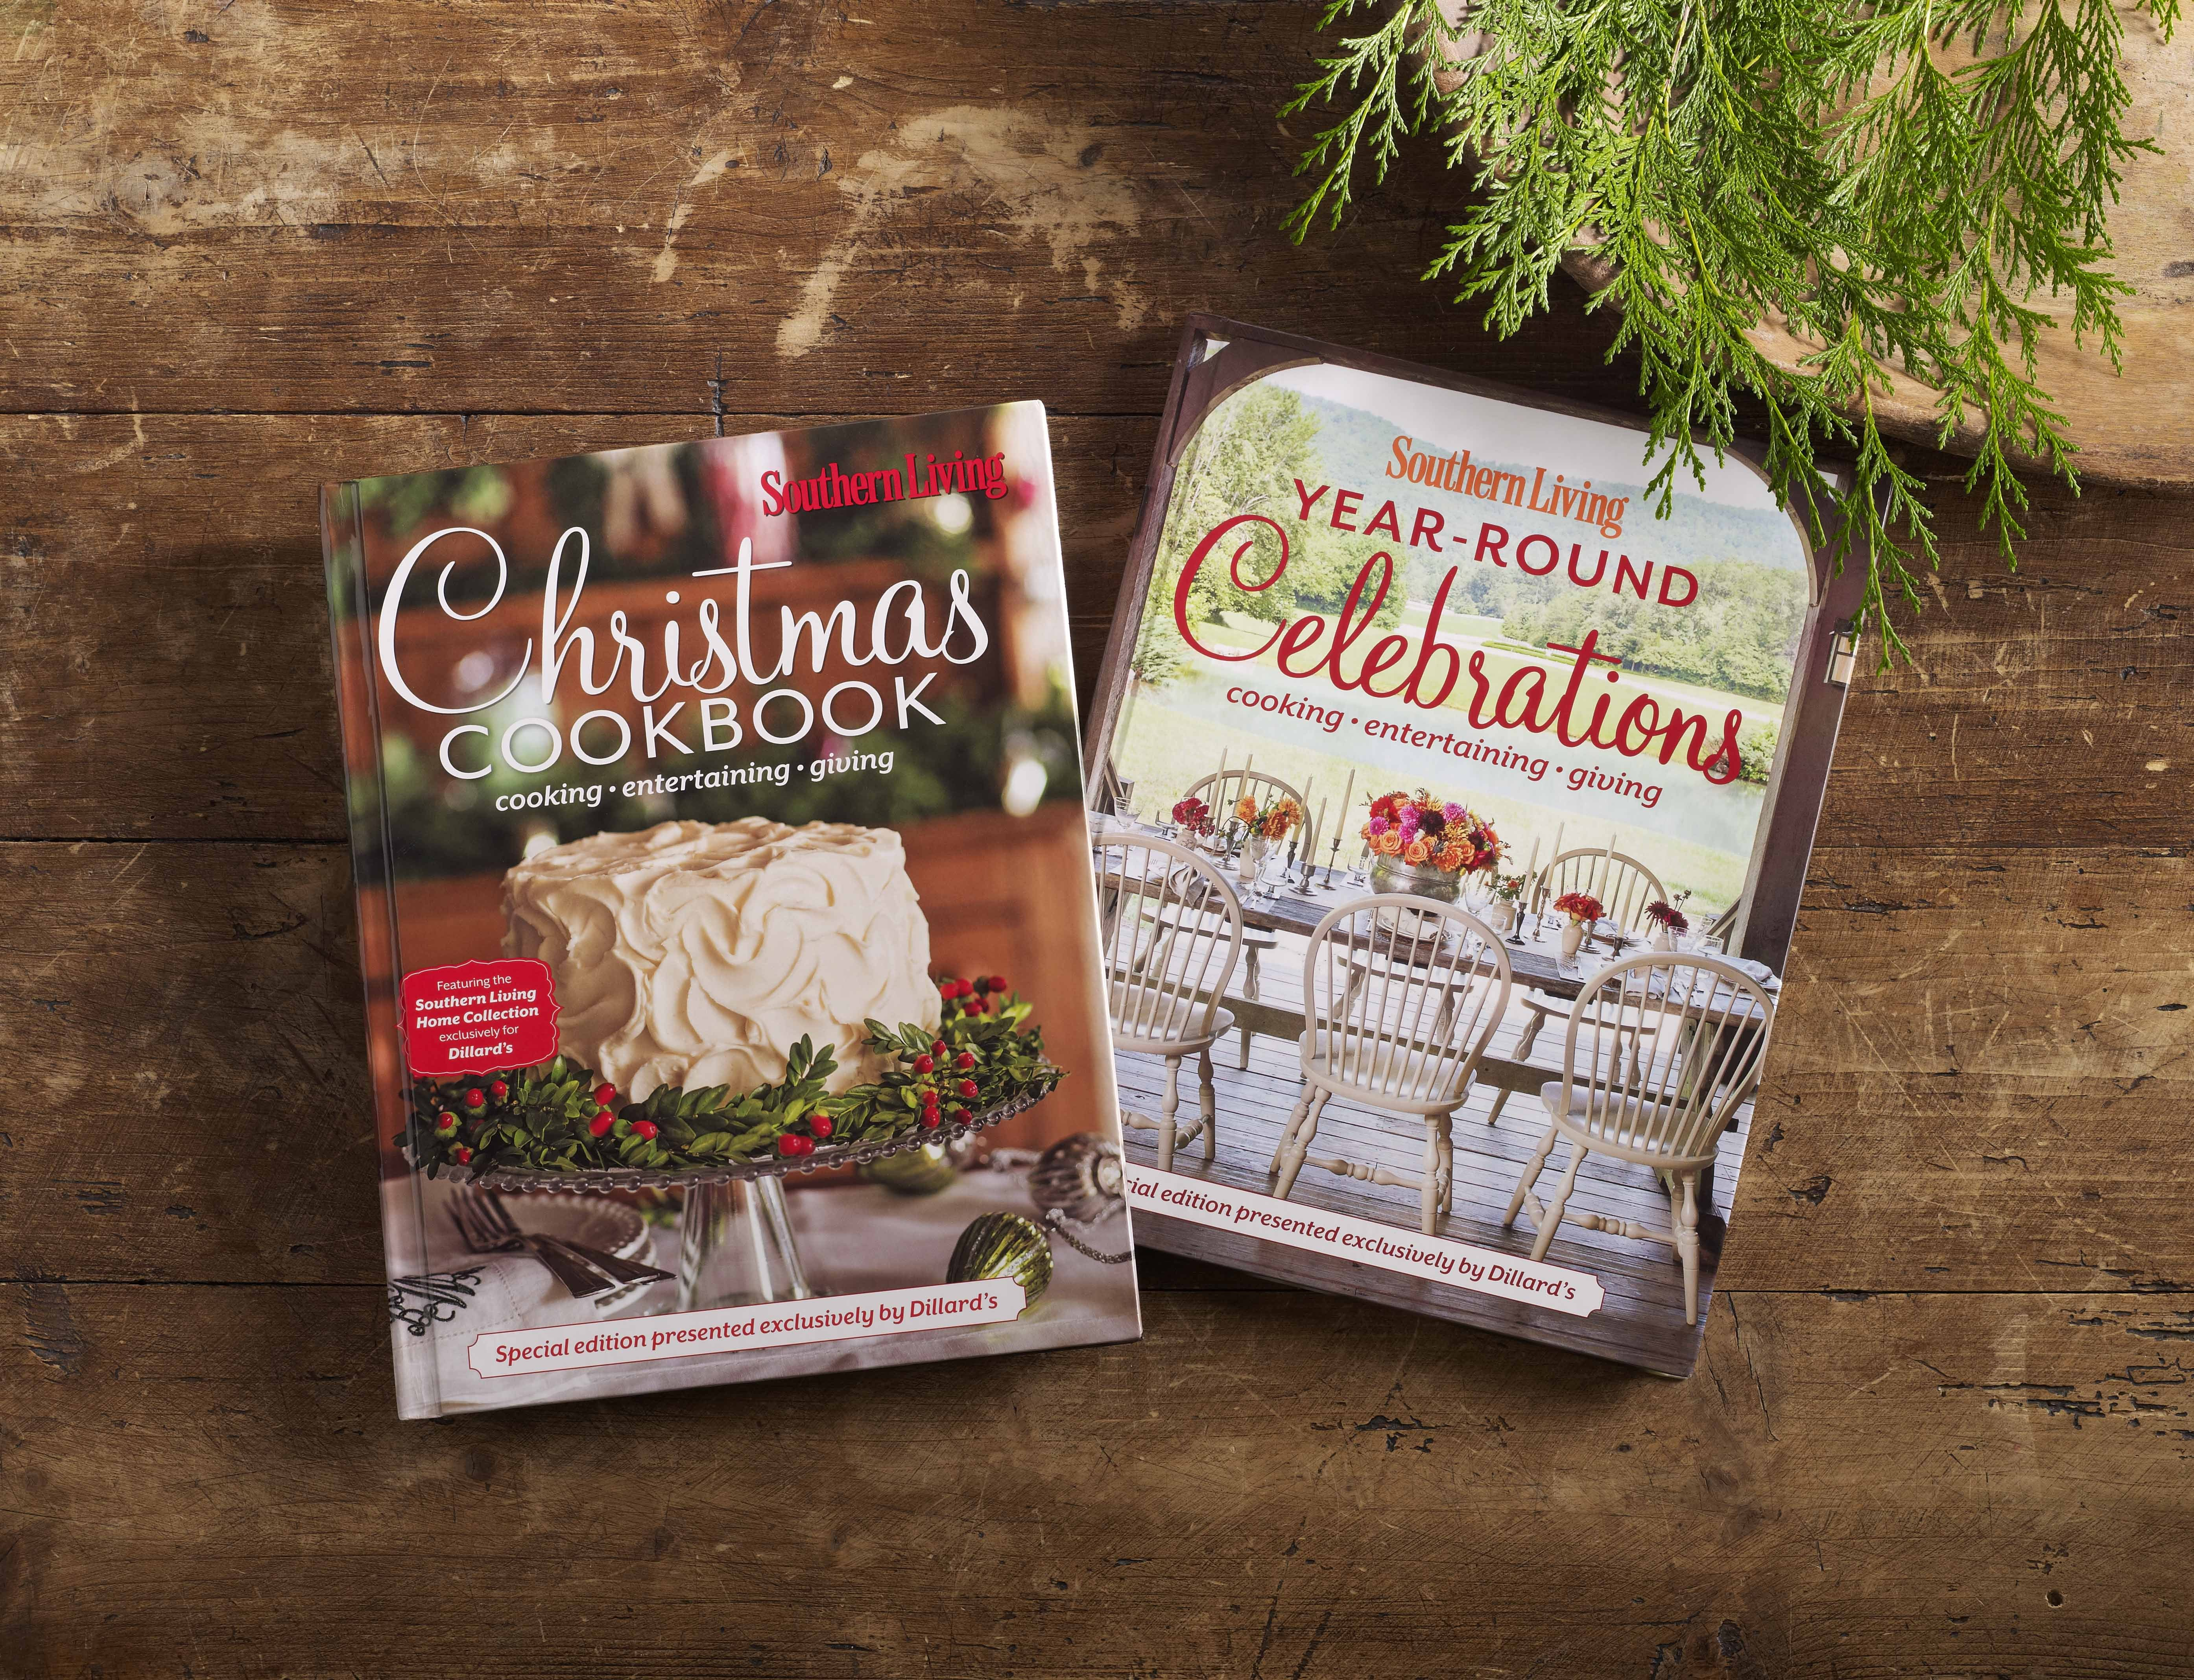 Dillard's Offers Exclusive Southern Living Christmas Cookbook to ...